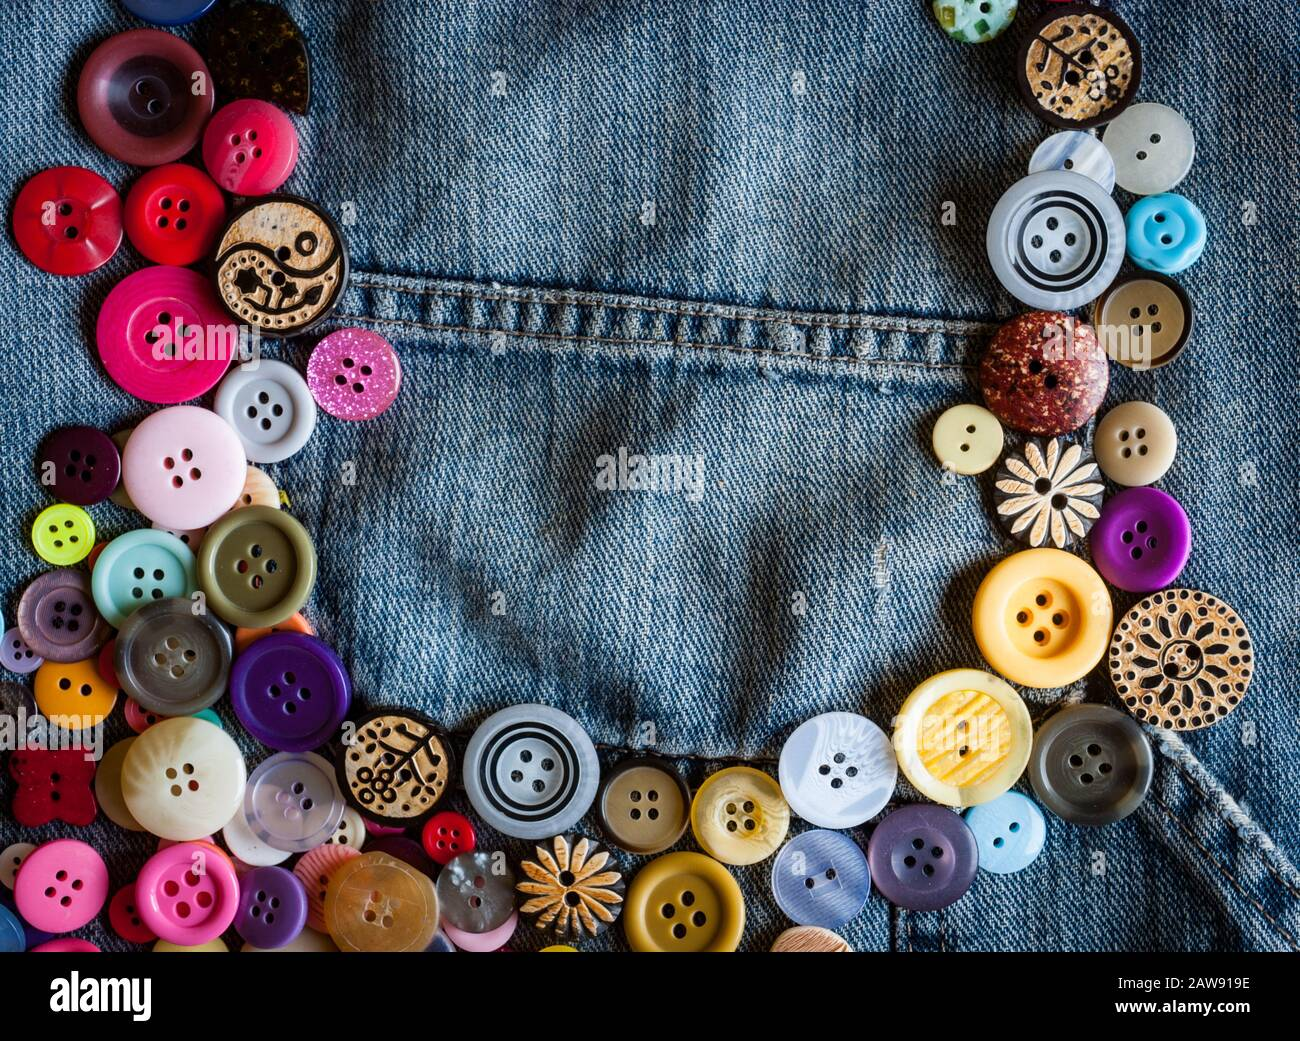 sewing buttons on denim jeans background Stock Photo